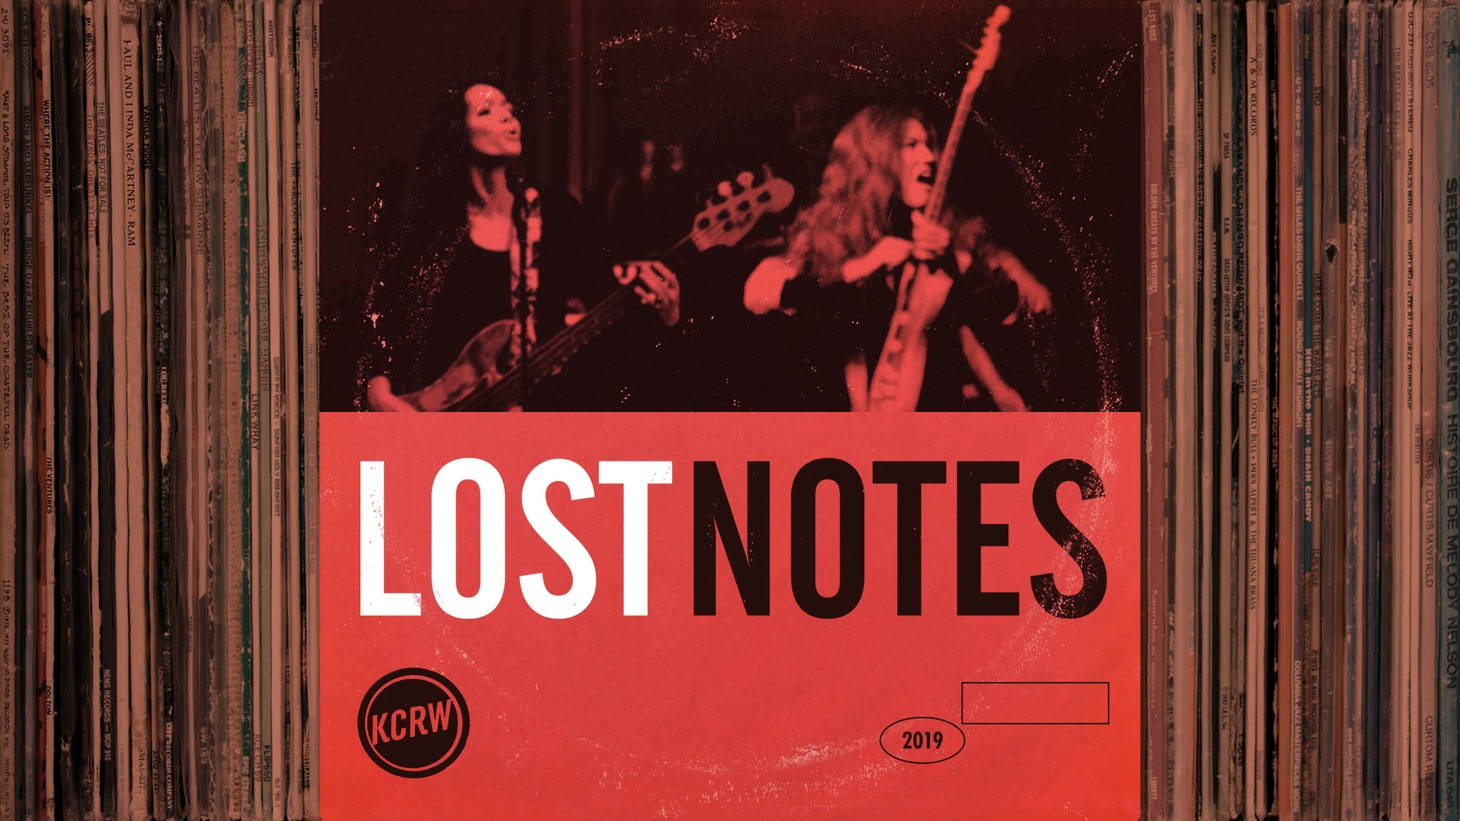 Following the 4th of July, we're sharing two of our favorite episodes from KCRW's music documentary podcast Lost Notes.